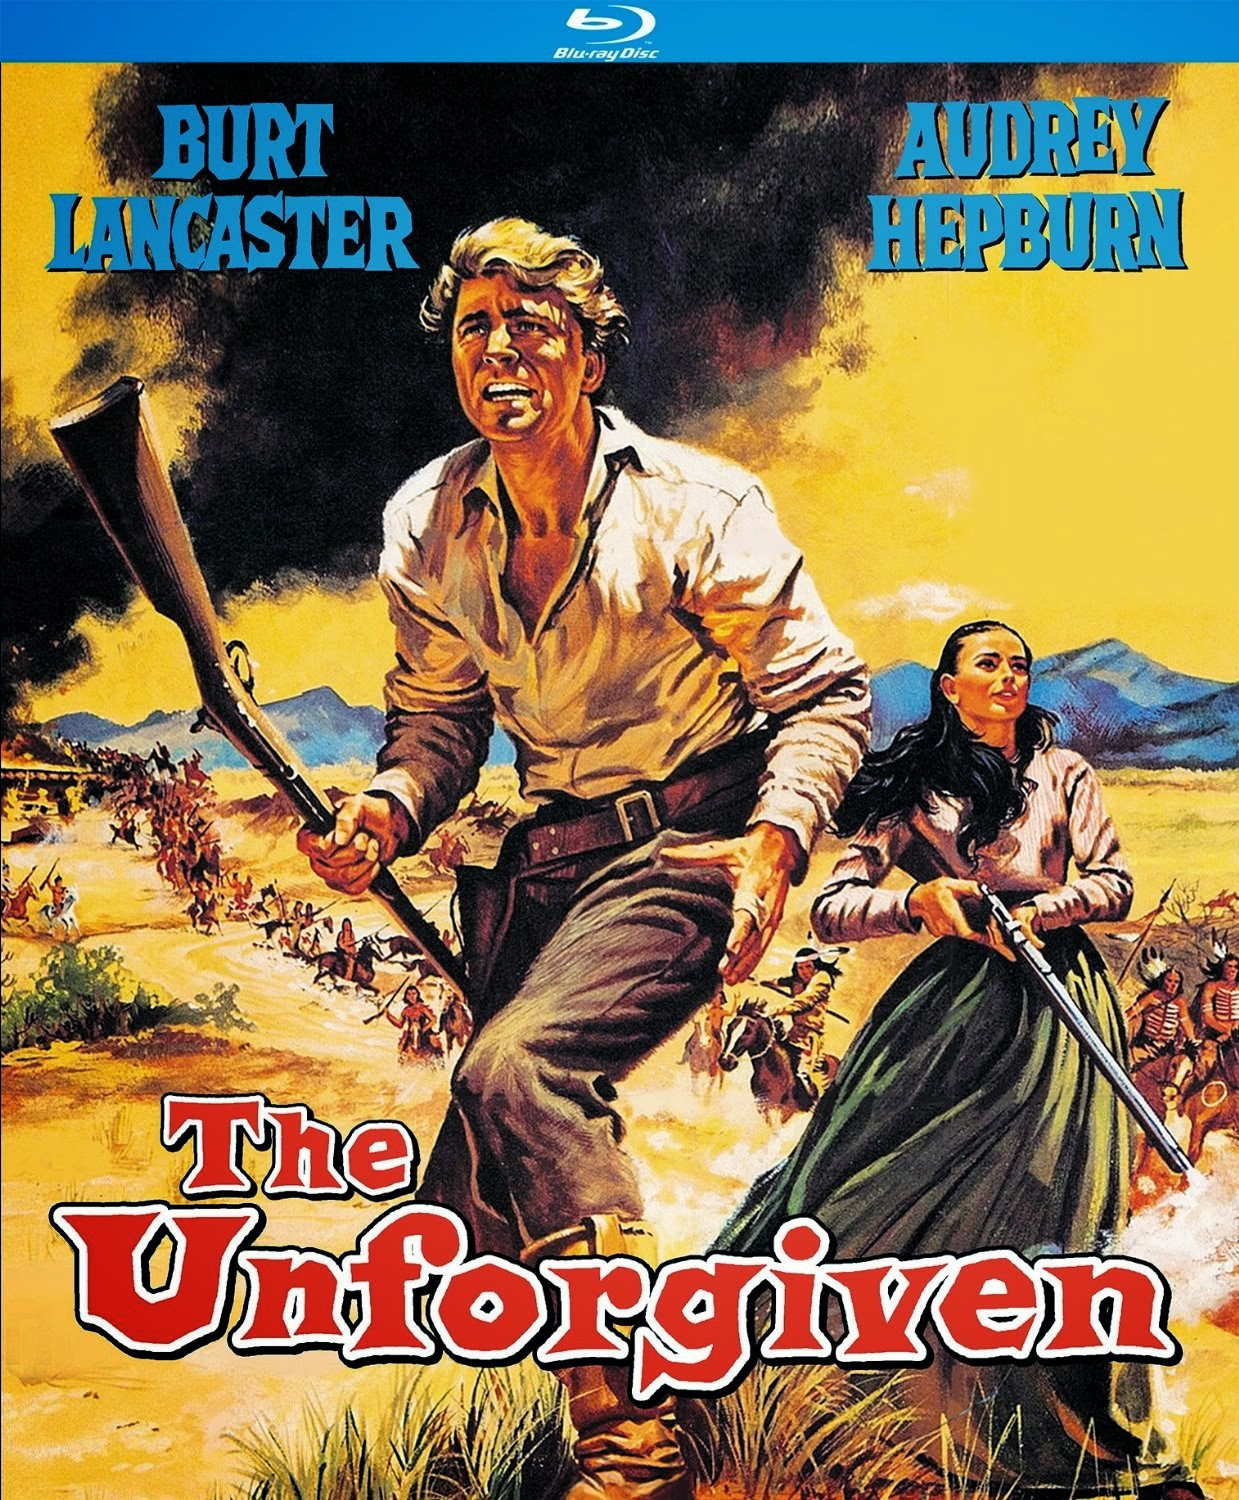 THE UNFORGIVEN (1960; John Huston